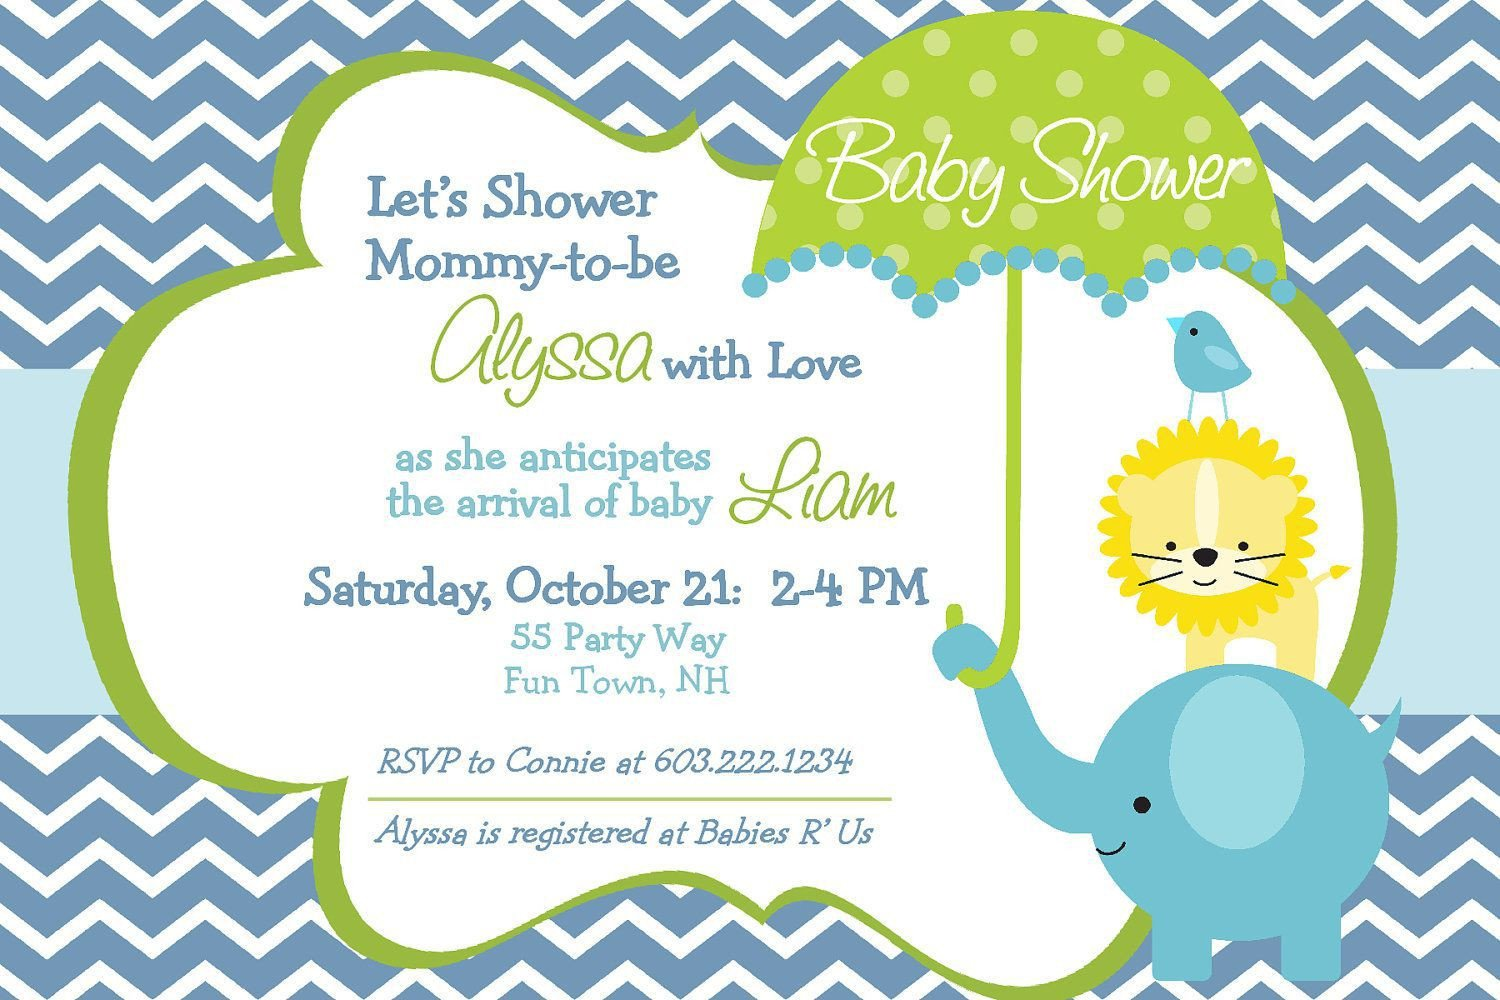 Baby Shower Invitations Templates Editable Baby Shower Invitation Templates Baby Shower Invitation